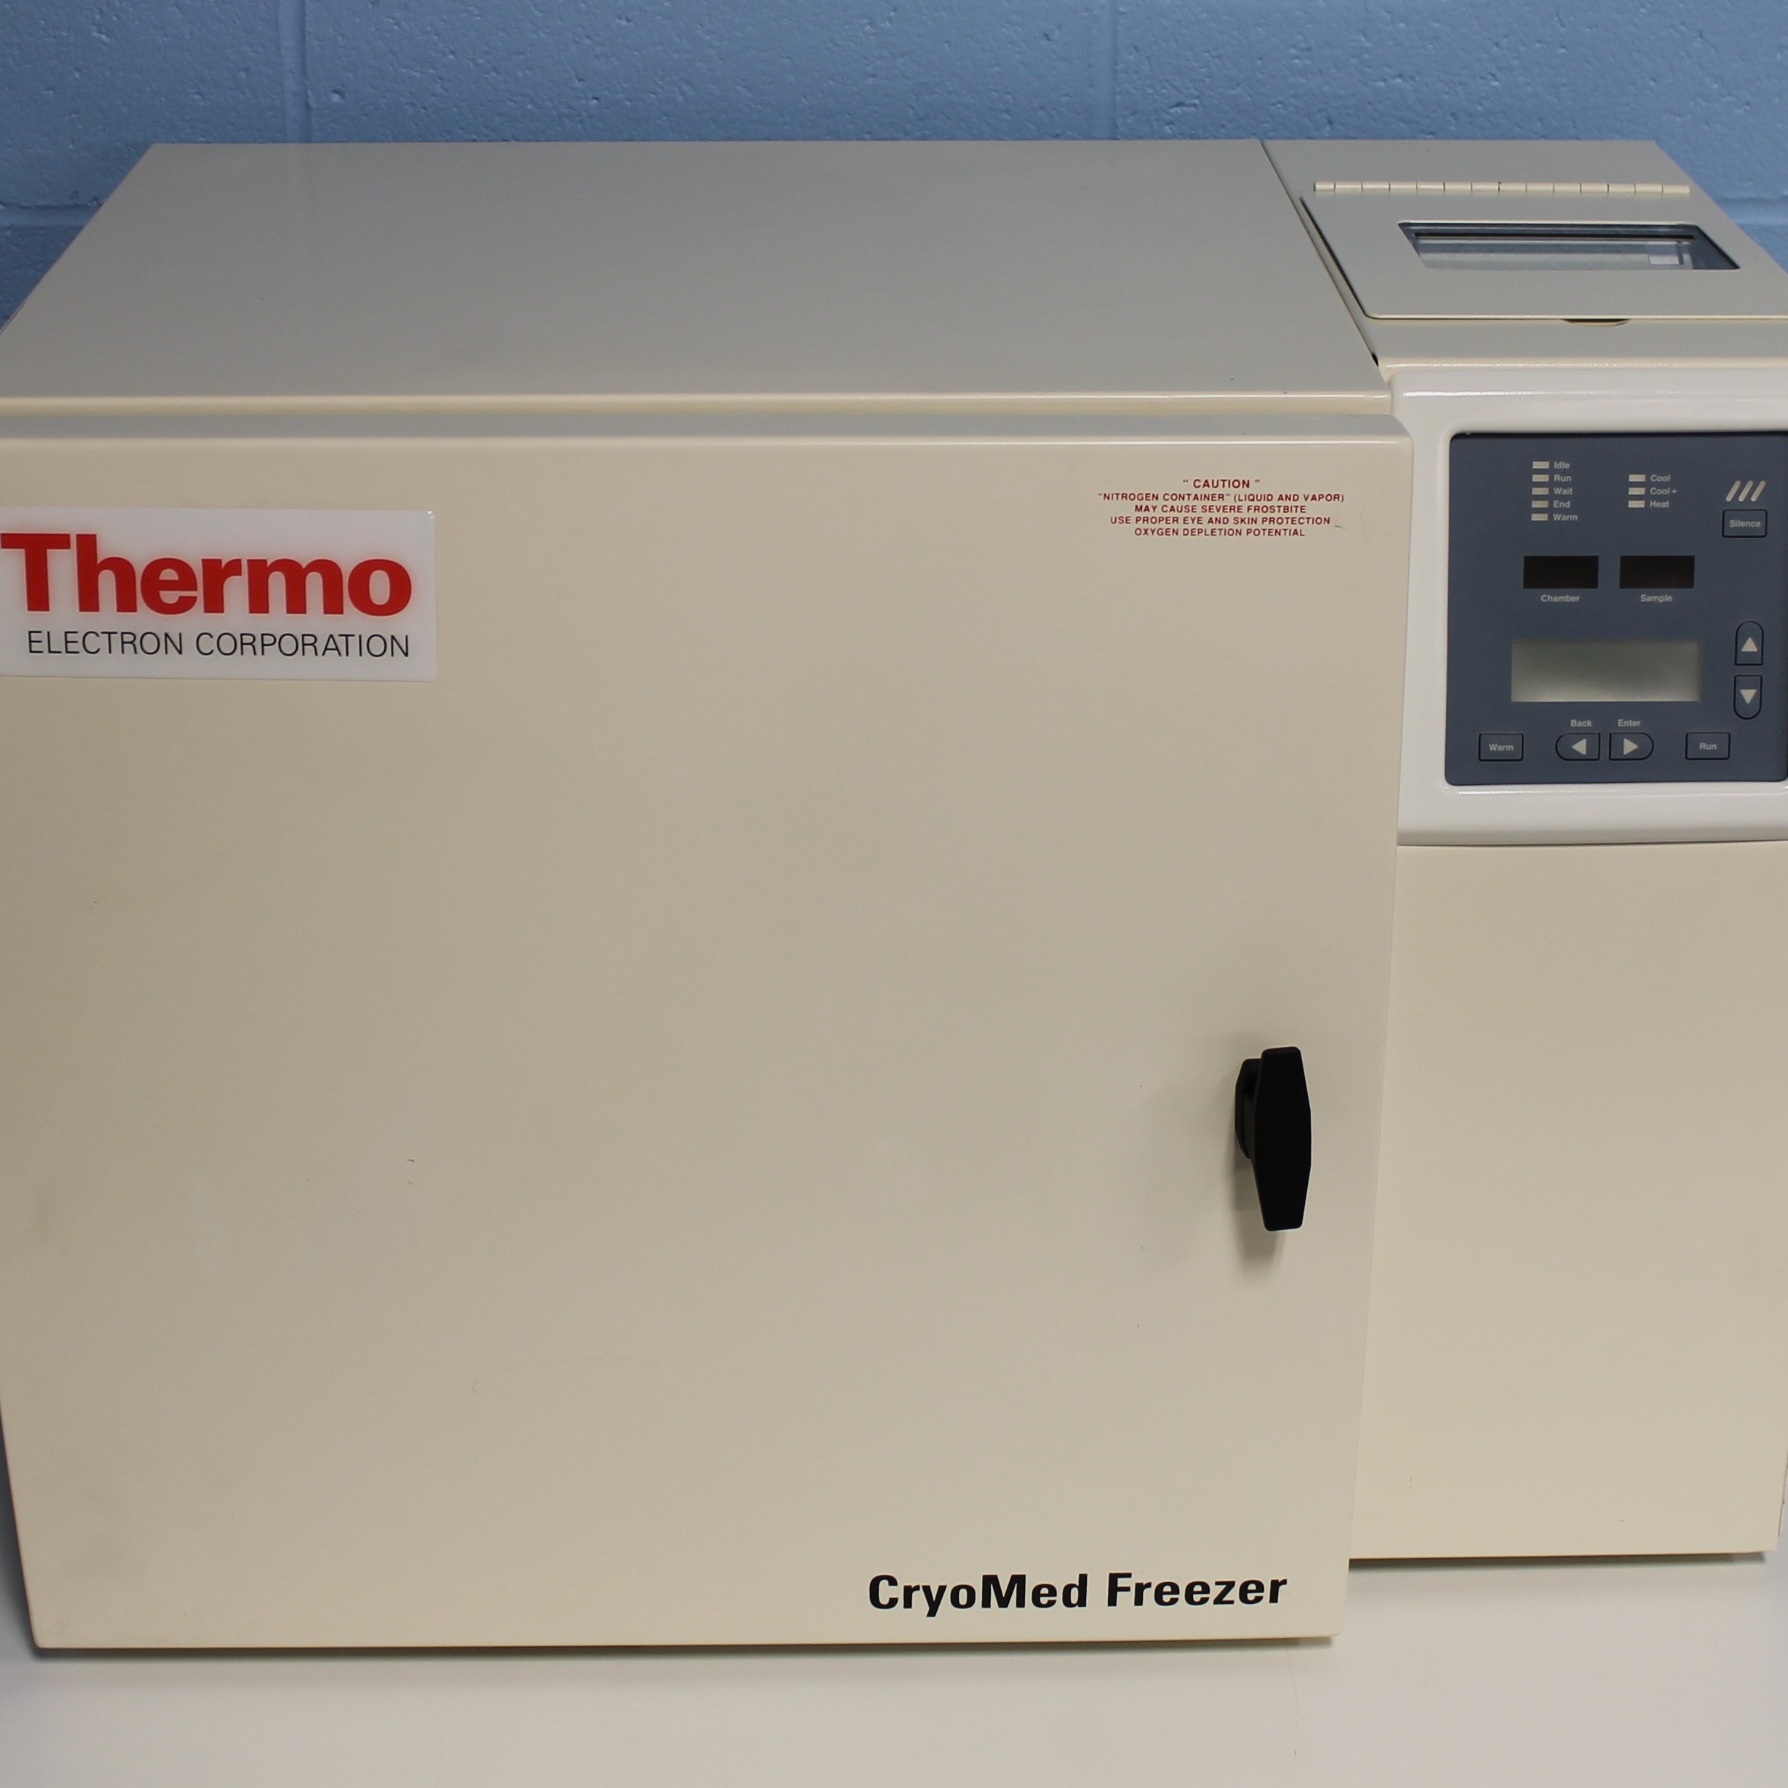 Thermo Electron Corporation Model 7450 CryoMed Controlled-Rate Freezer Image